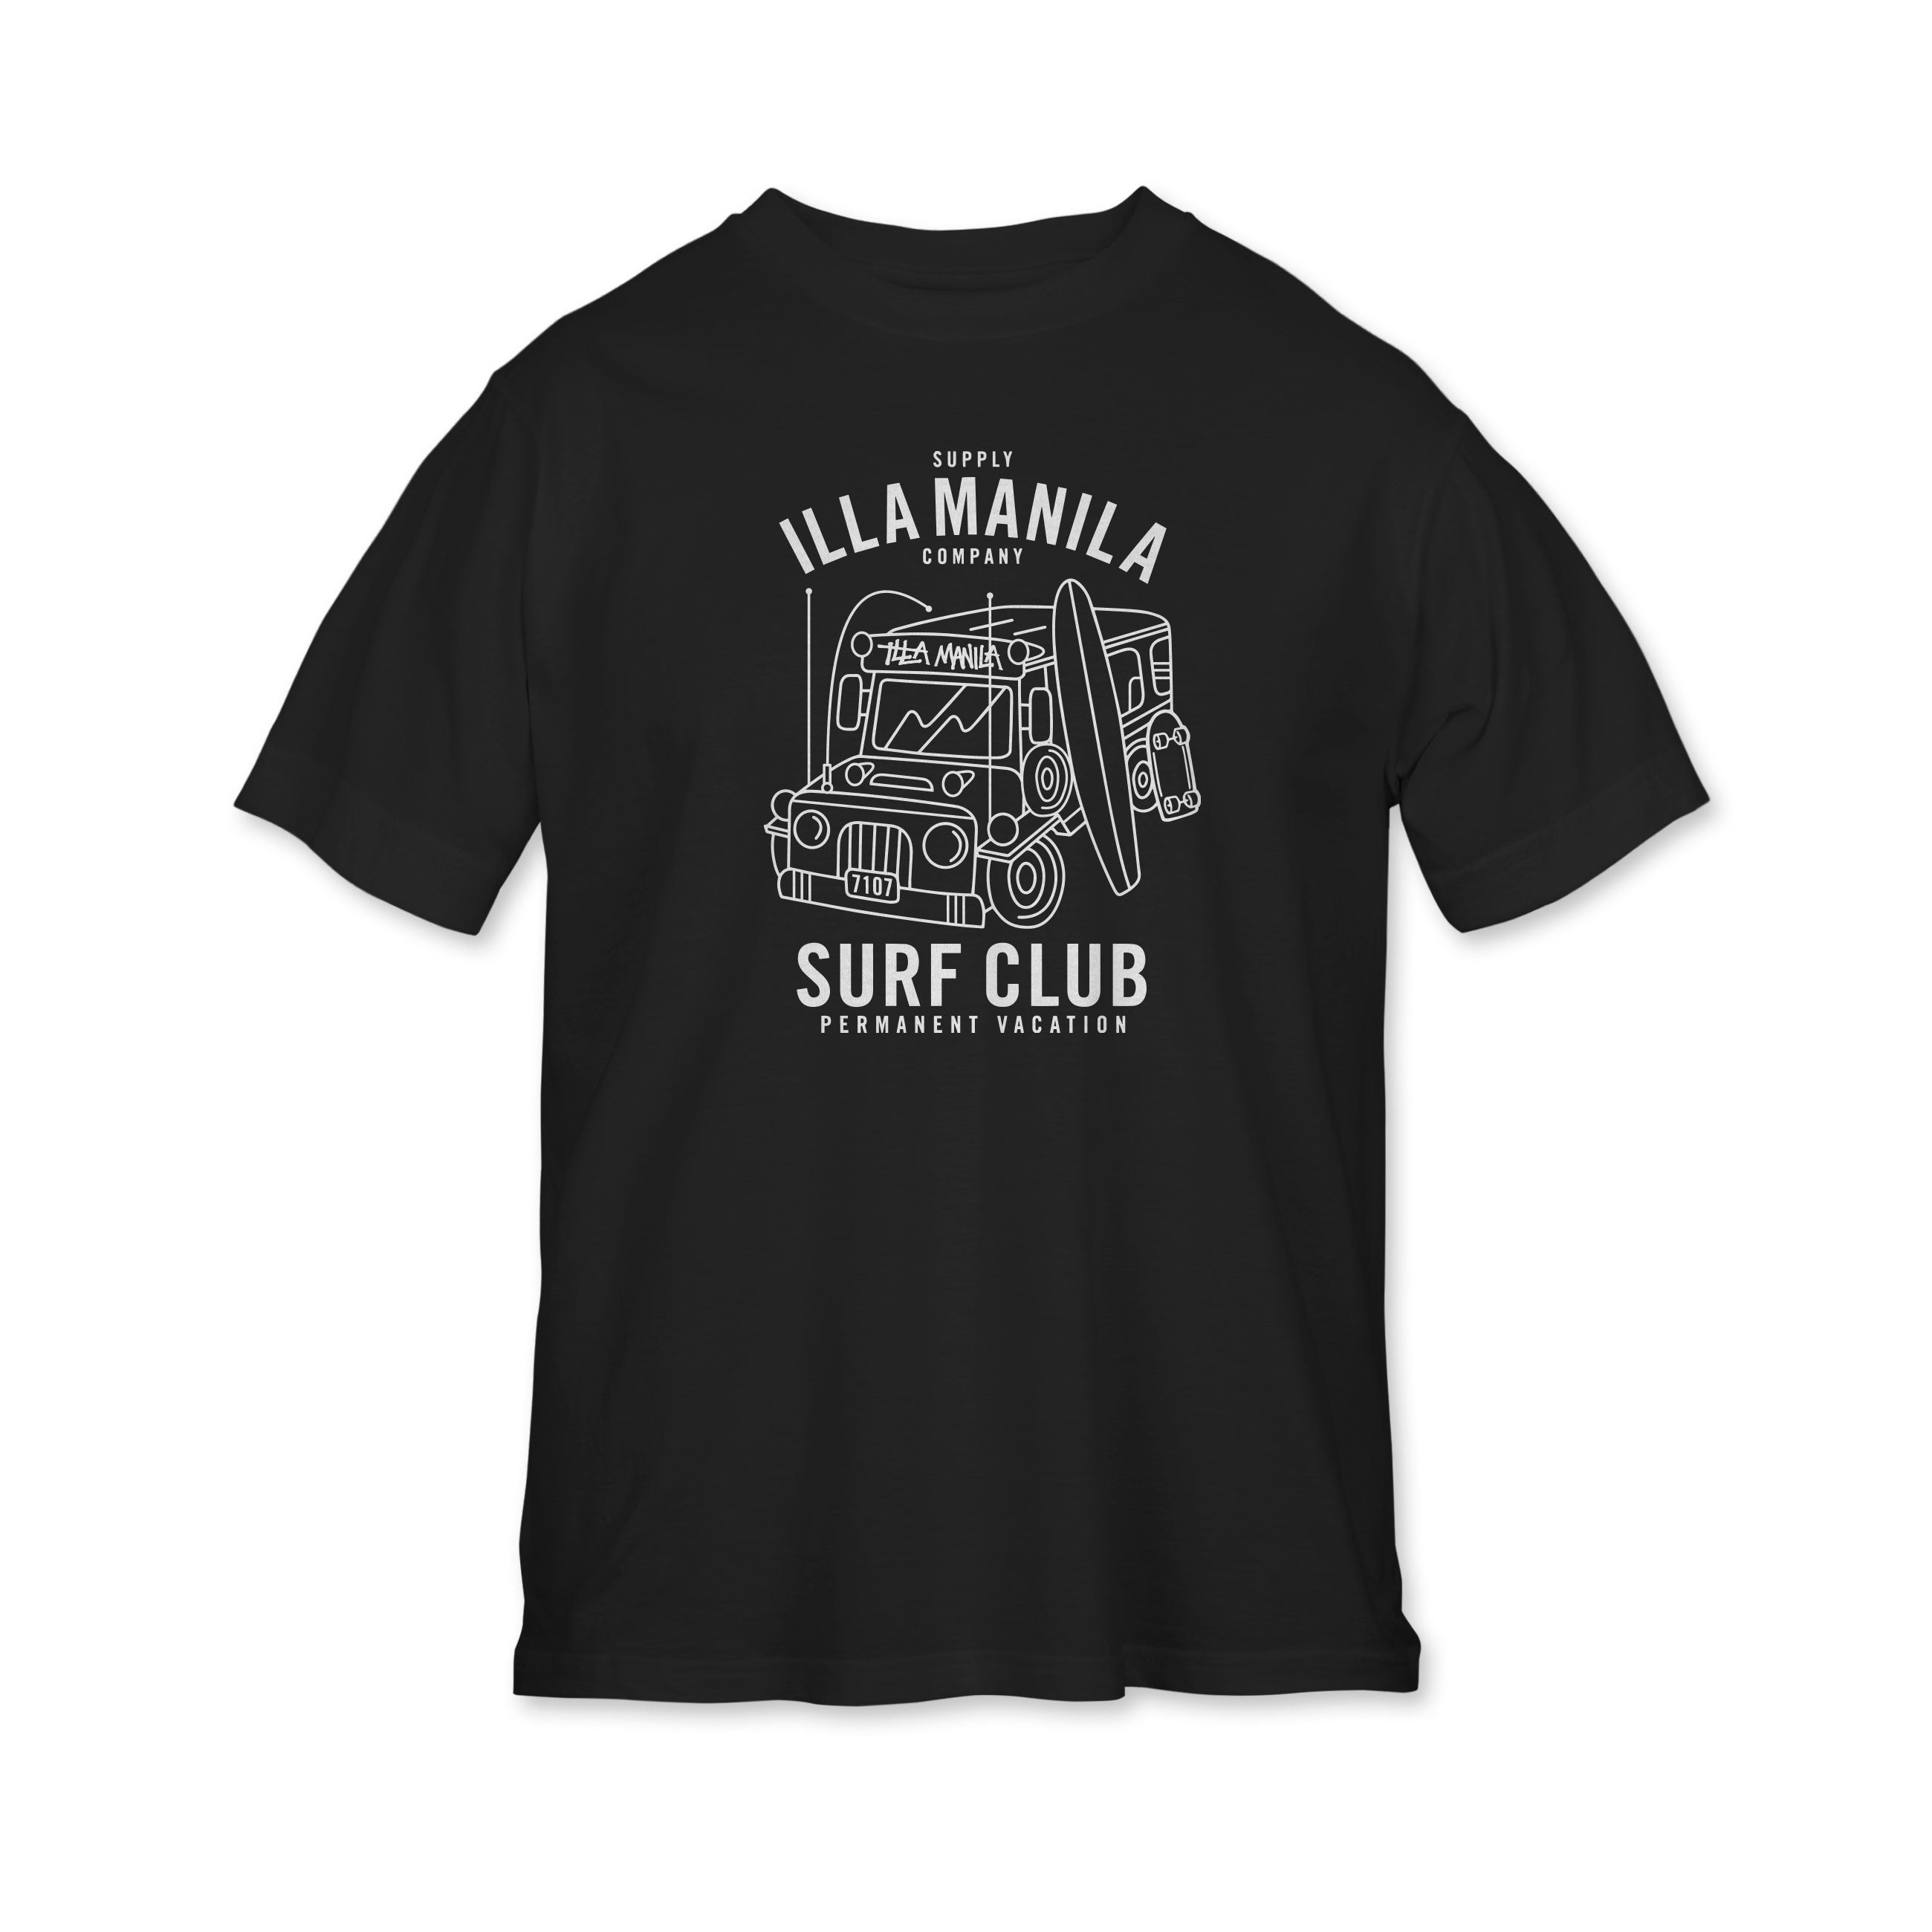 Surf Club T-shirt - Youth - Black